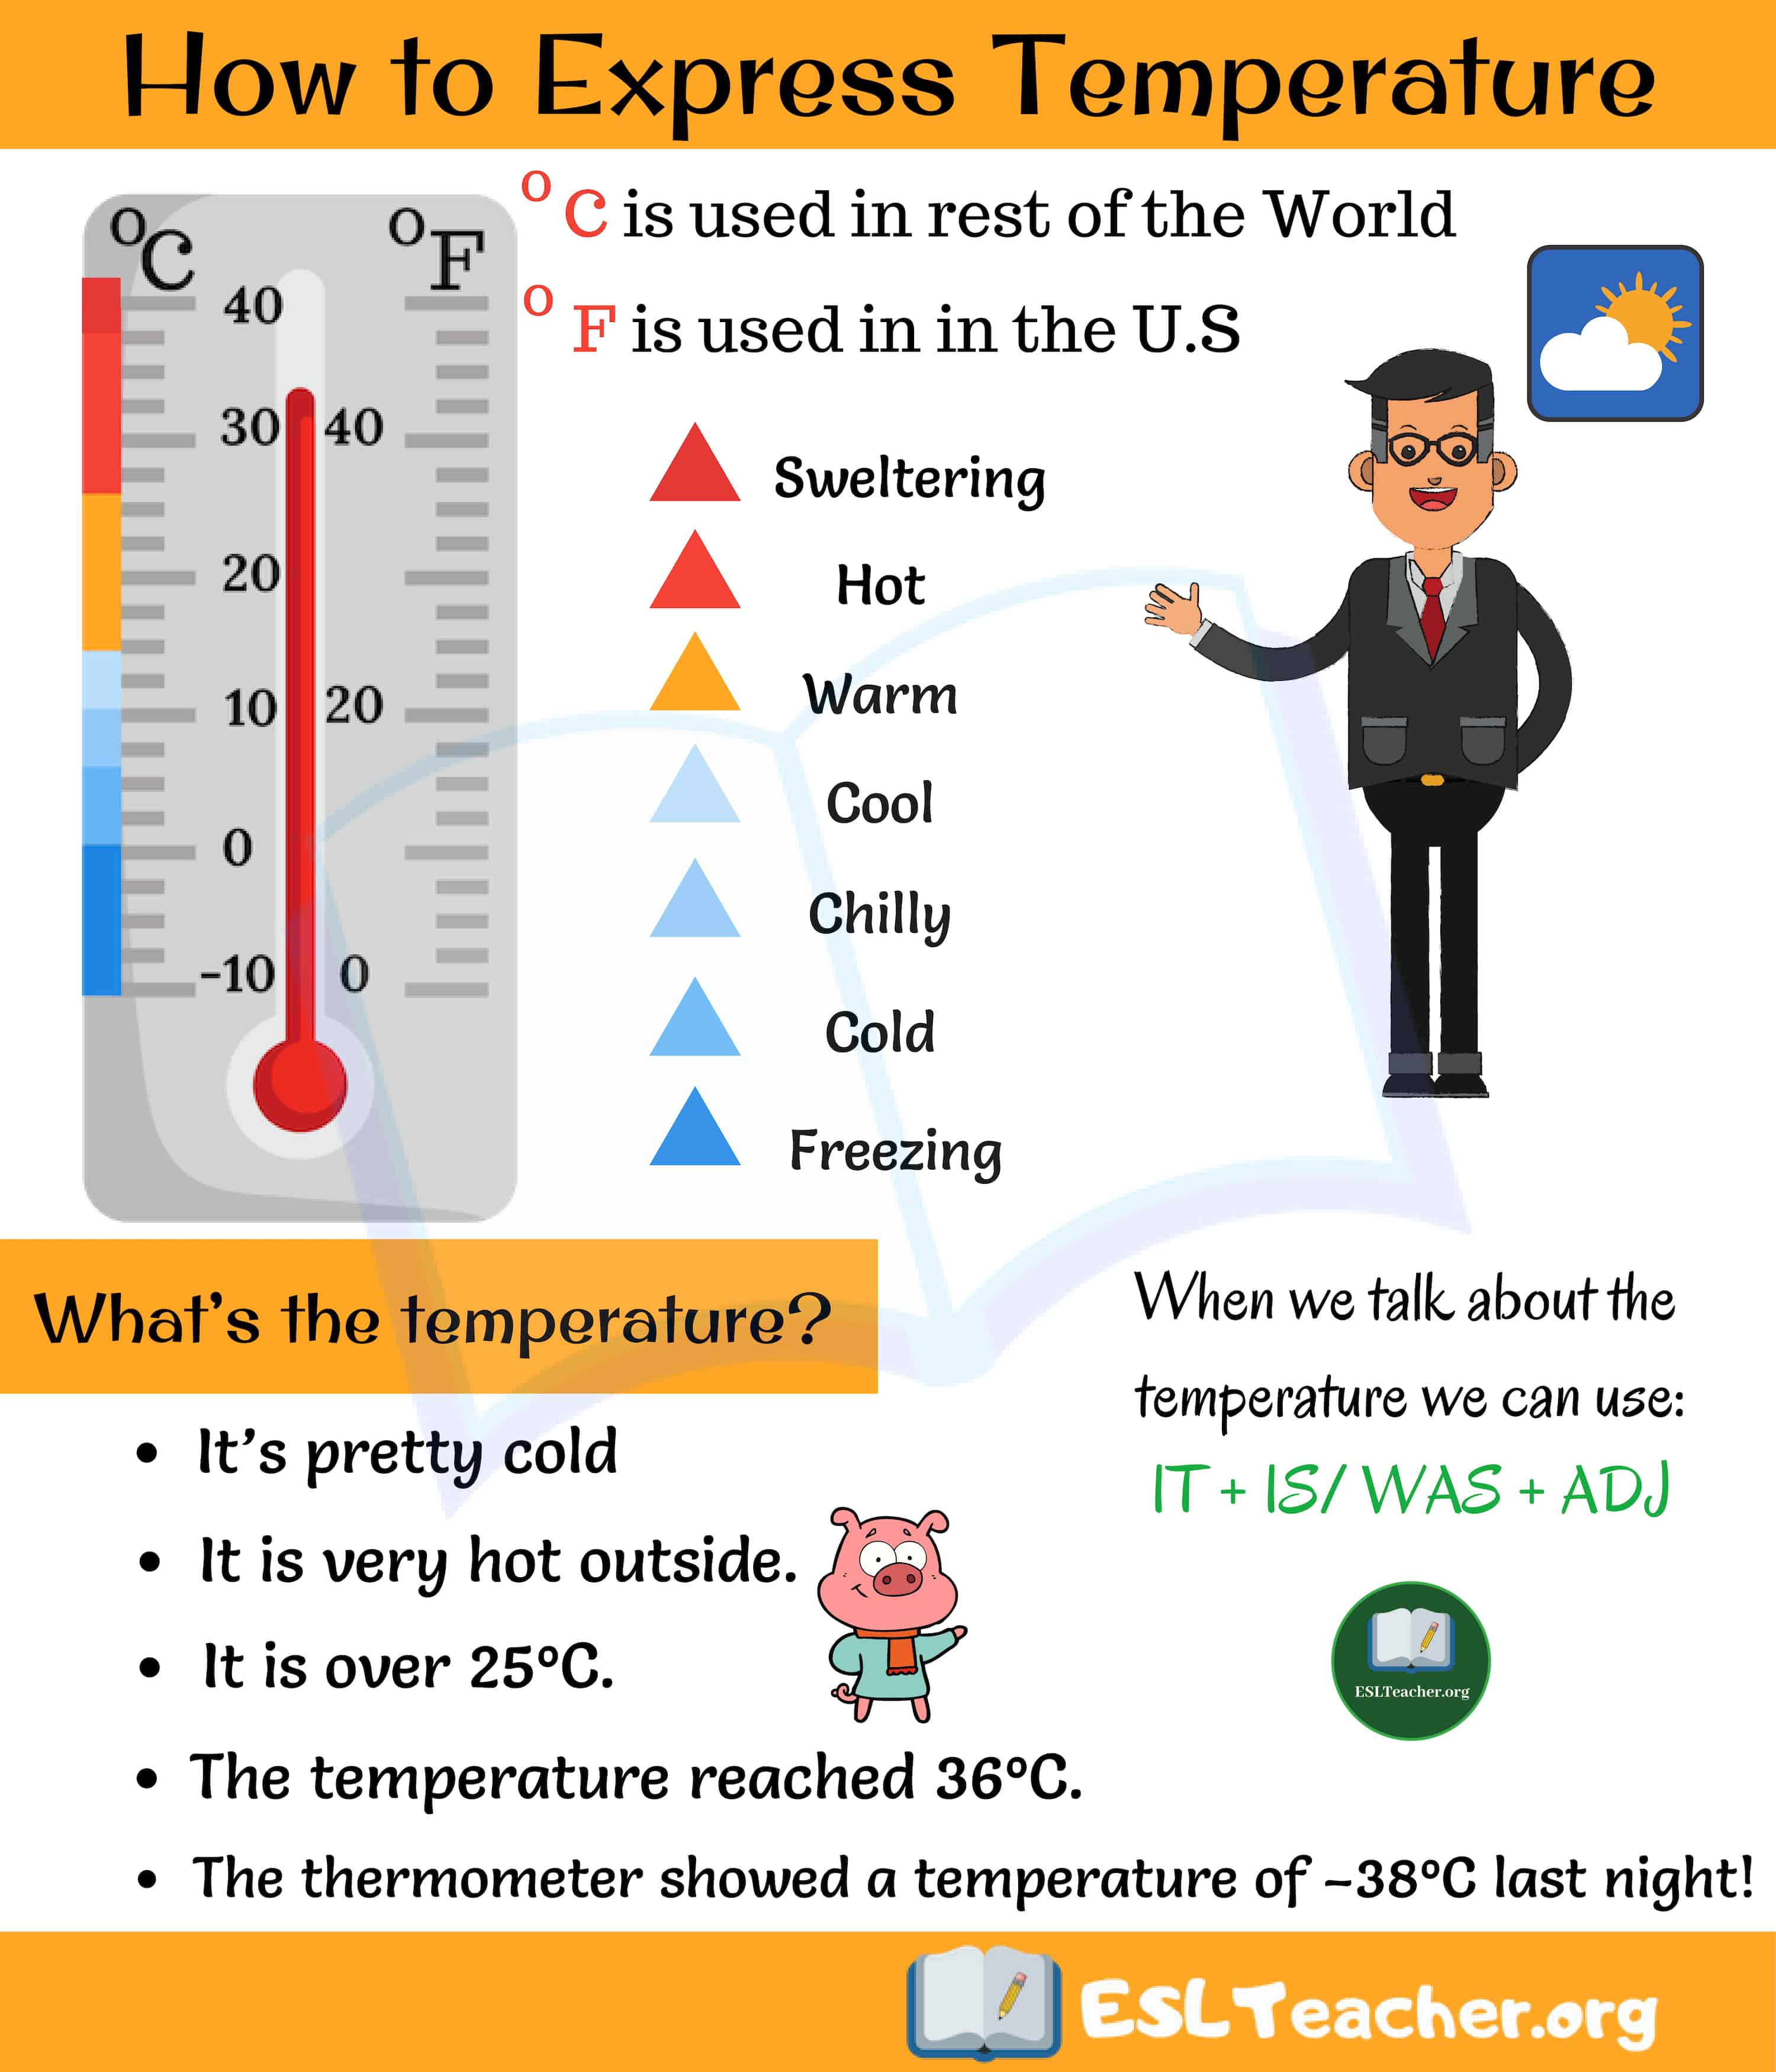 Temperature Vocabulary and Expressions